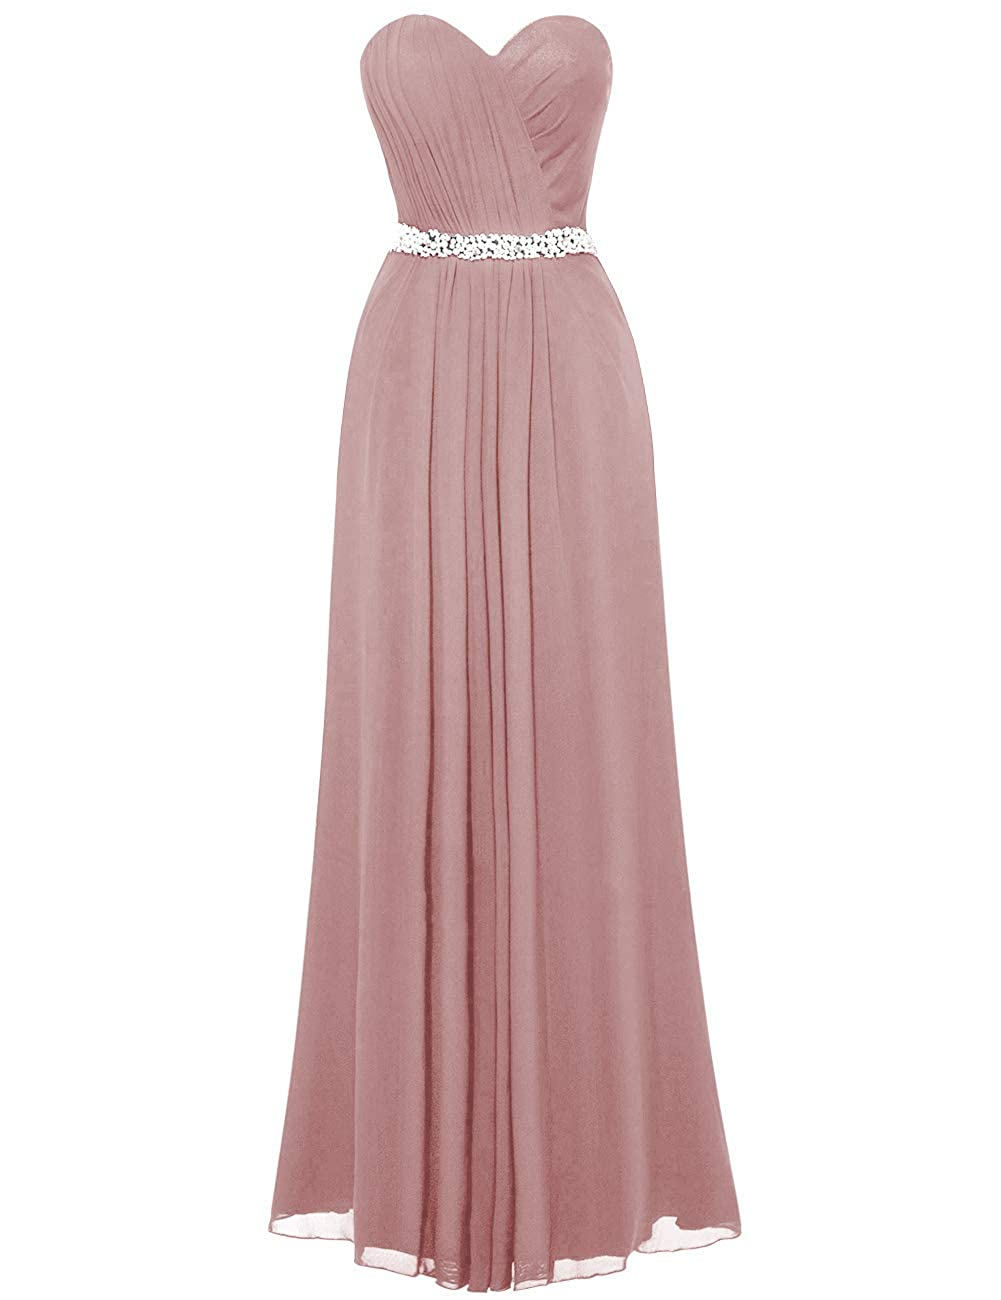 bluesh Uther Bridesmaid Dresses Sweetheart Pleats Long A Line Beaded Formal Women Prom Gown